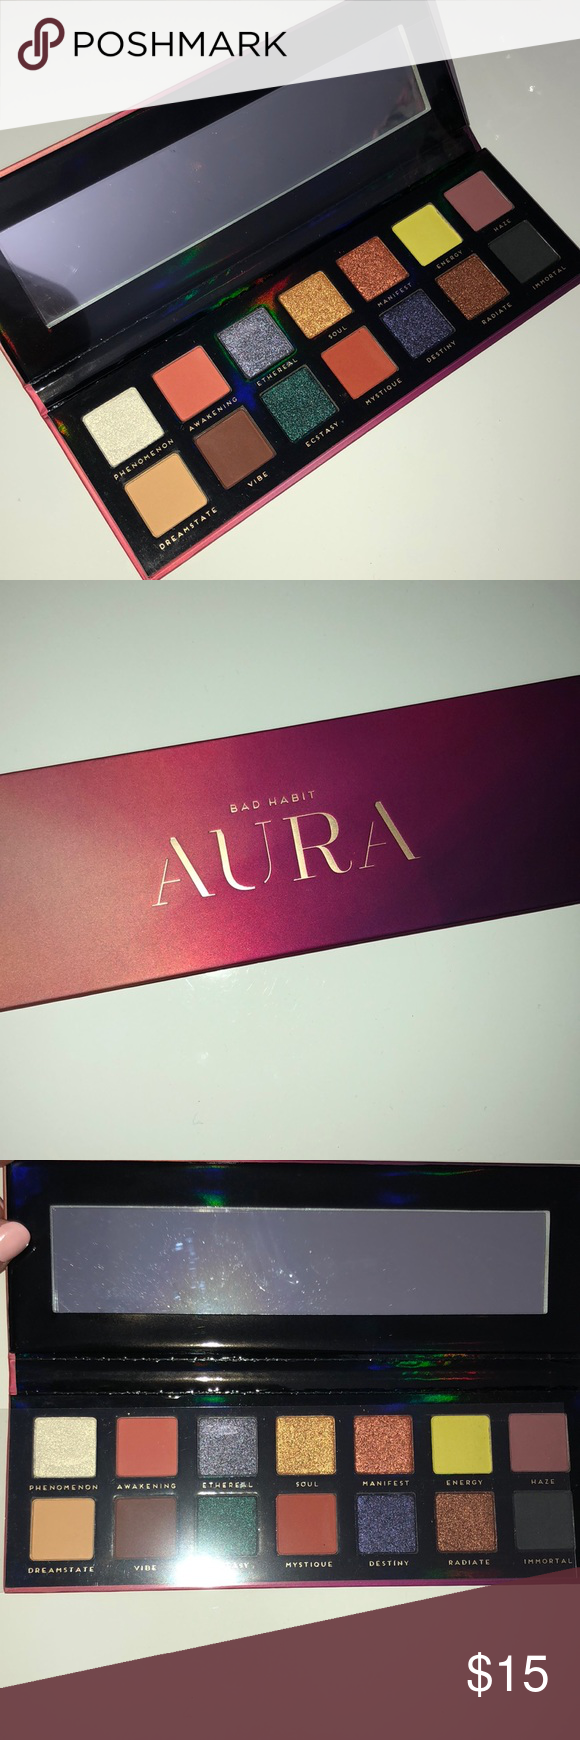 BAD HABIT AURA palette BRAND NEW IN BOX Bad Habit Makeup